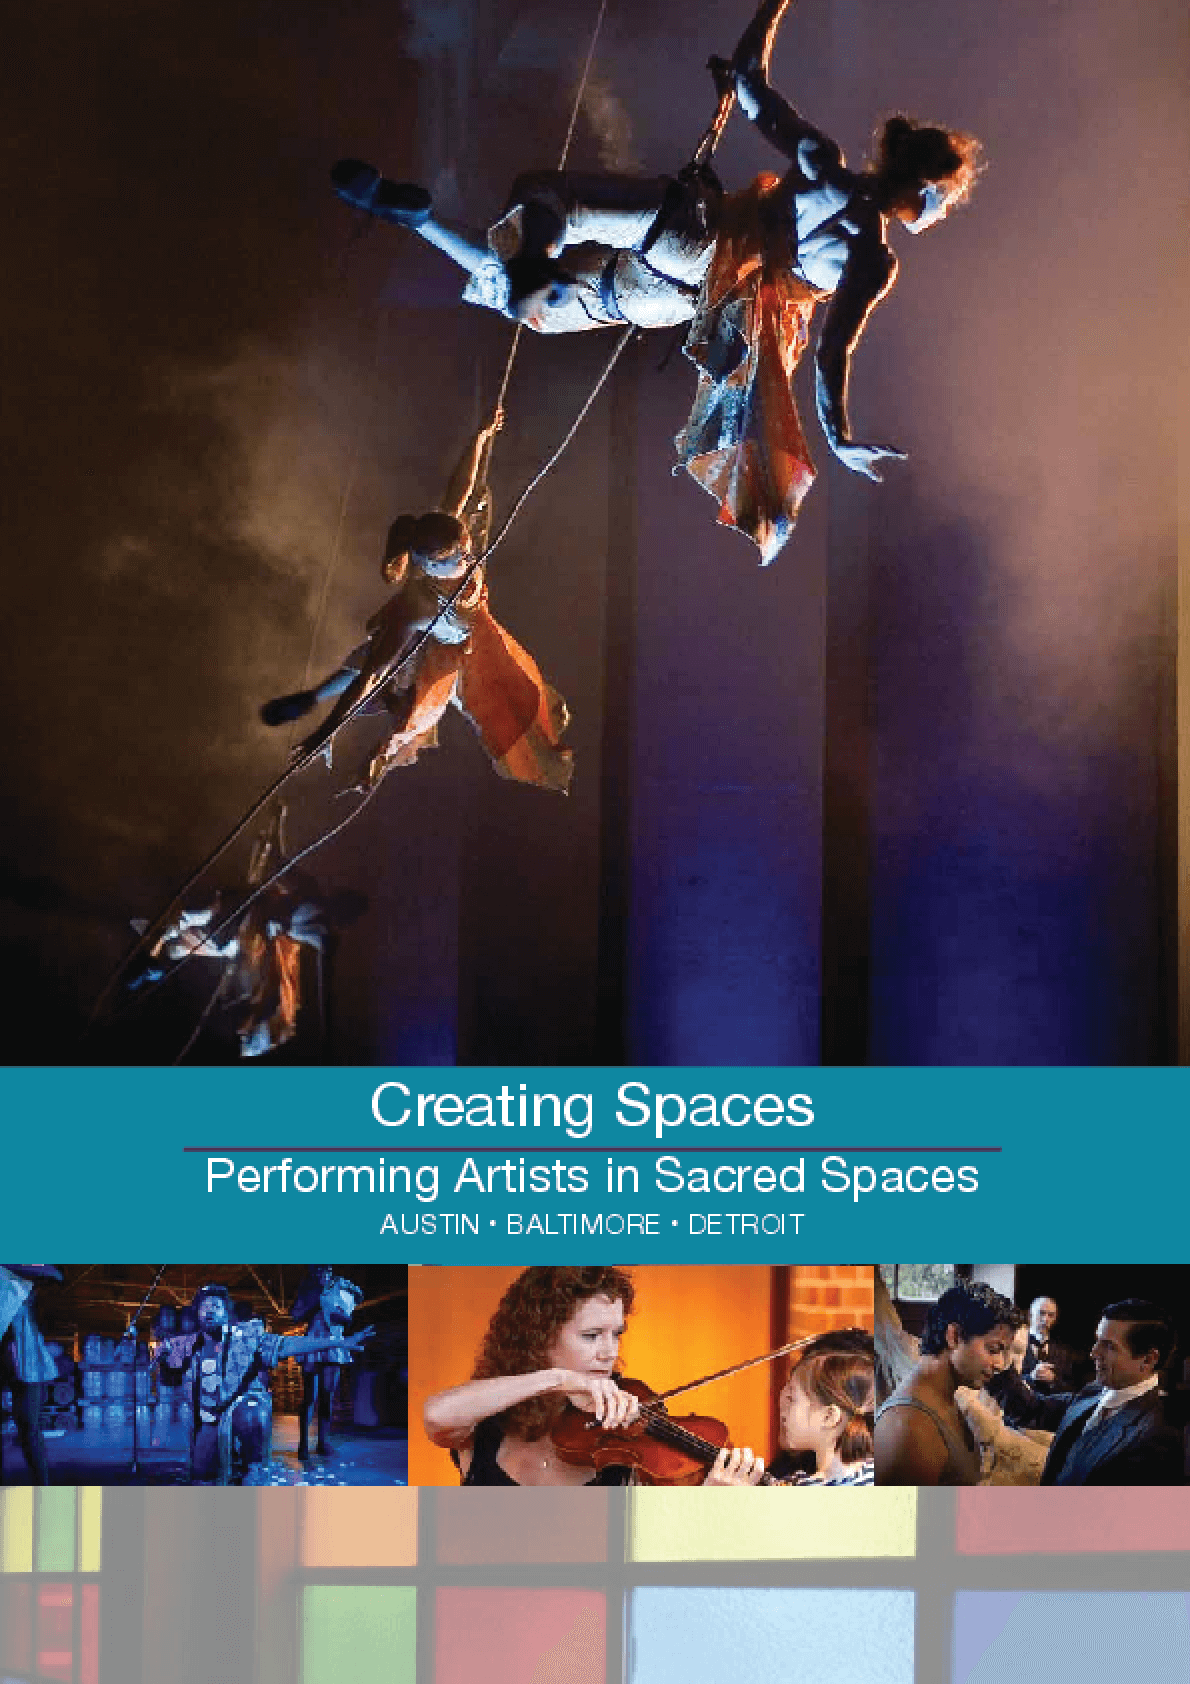 Creating Spaces: Performing Artists in Sacred Spaces; Austin, Baltimore, Detroit